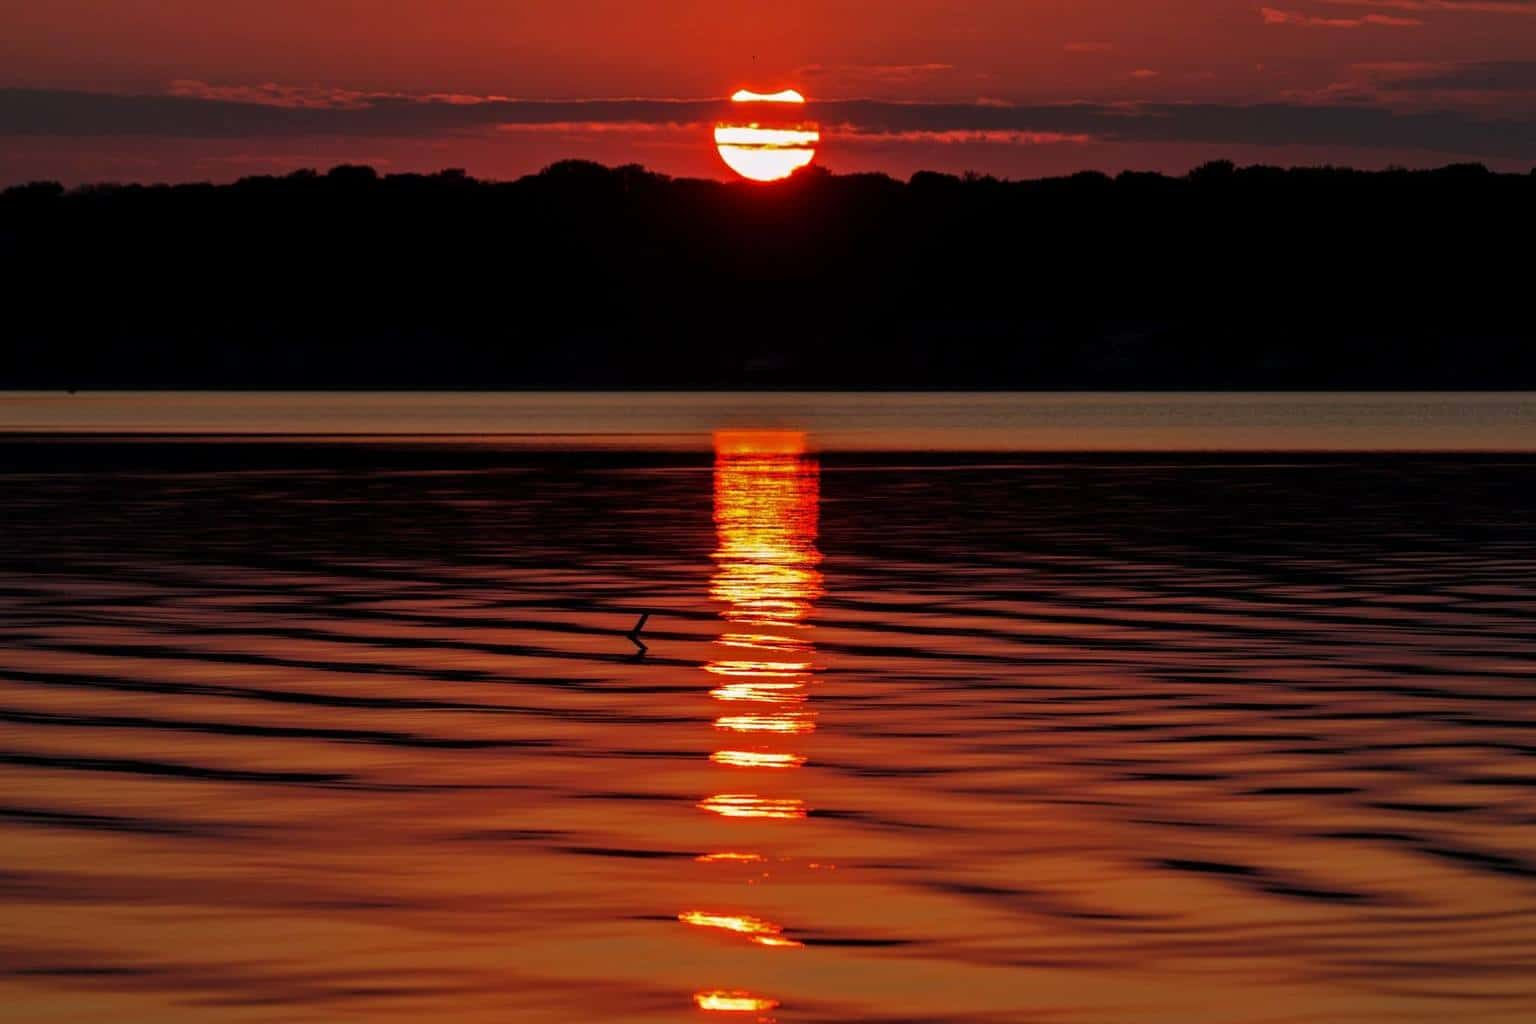 Partial solar eclipse that occurred just before sunset on October 23, 2014 (Note the notch at the top of the sun). Photo taken at Leona Park on Lake Belton in Central Texas.